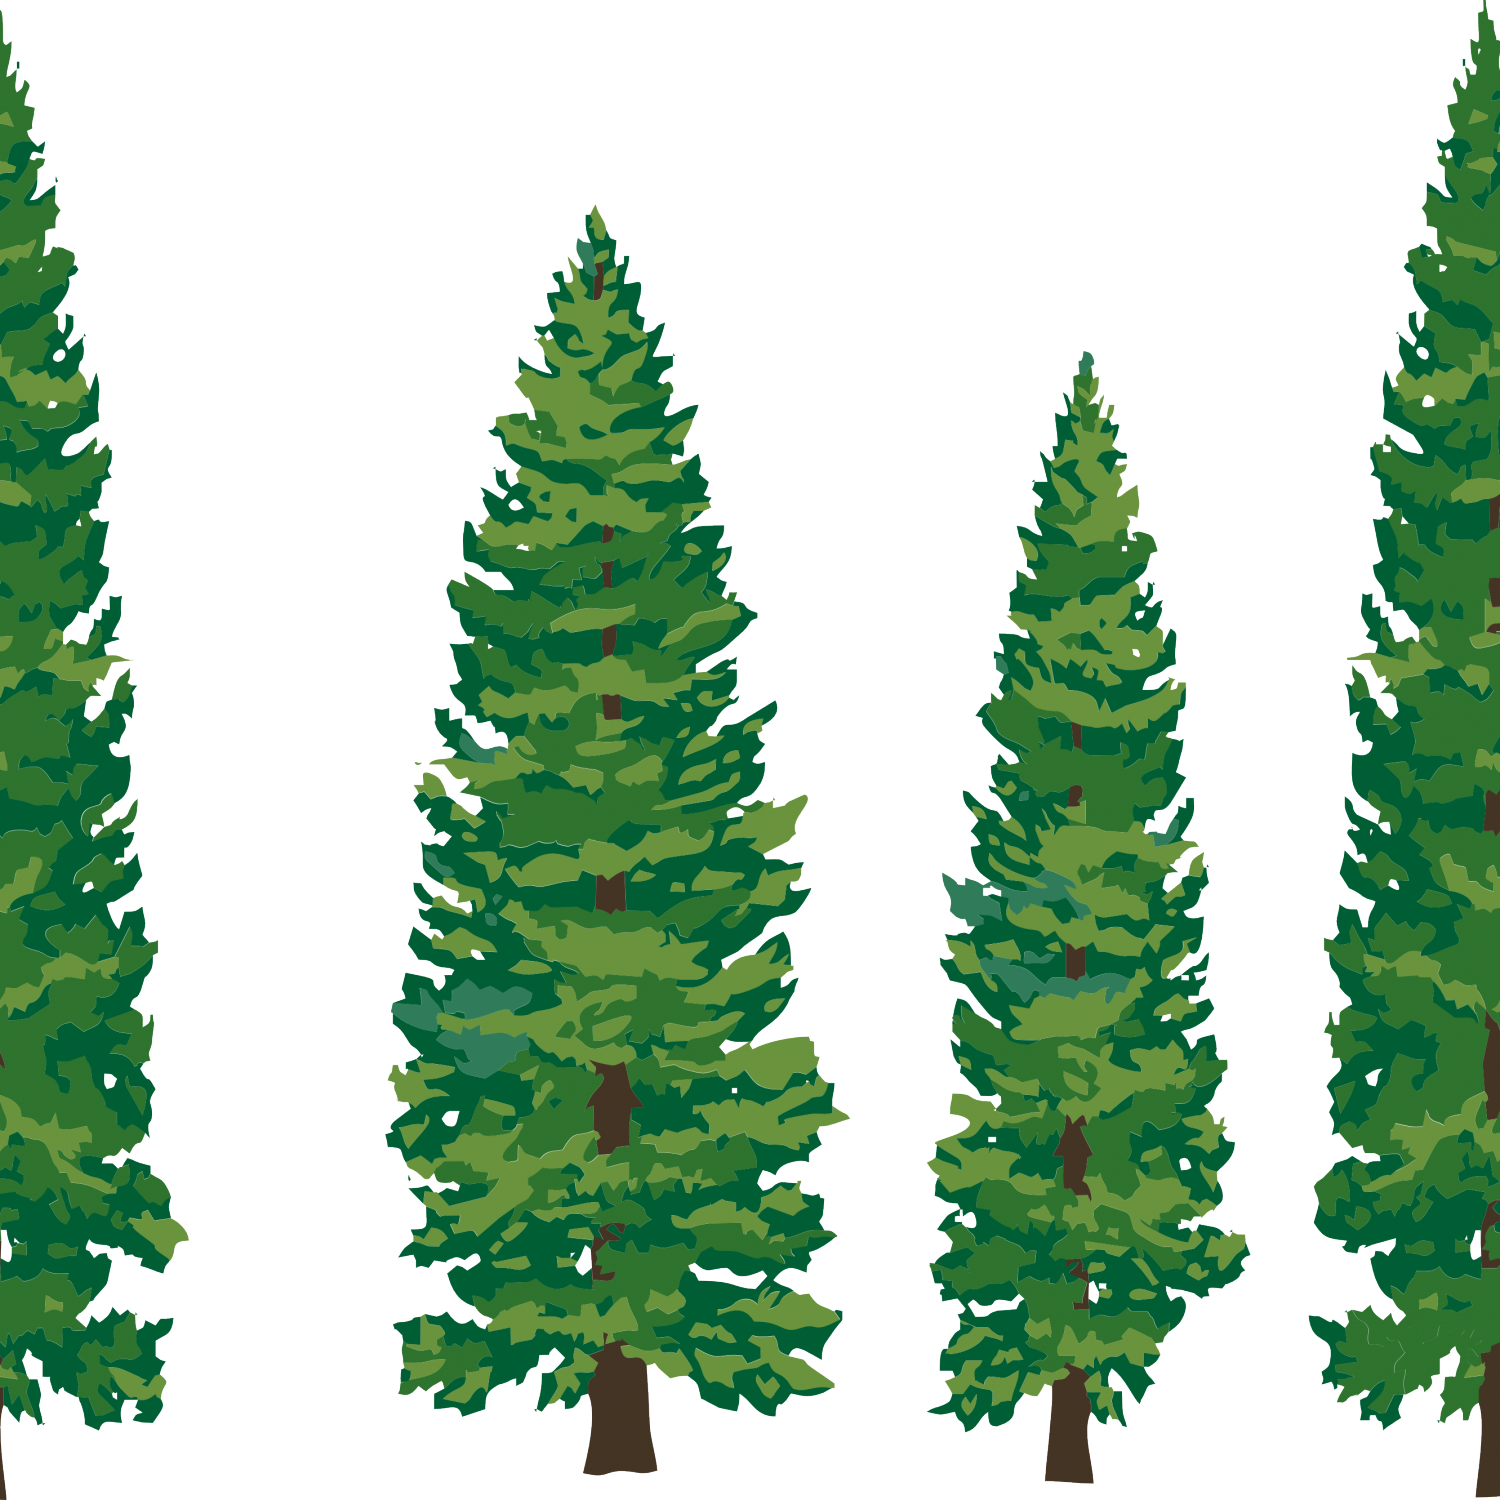 1500x1500 Pine Trees Silhouette Pine Clipart Ndi85k9cepng, Cartoon Pine Tree